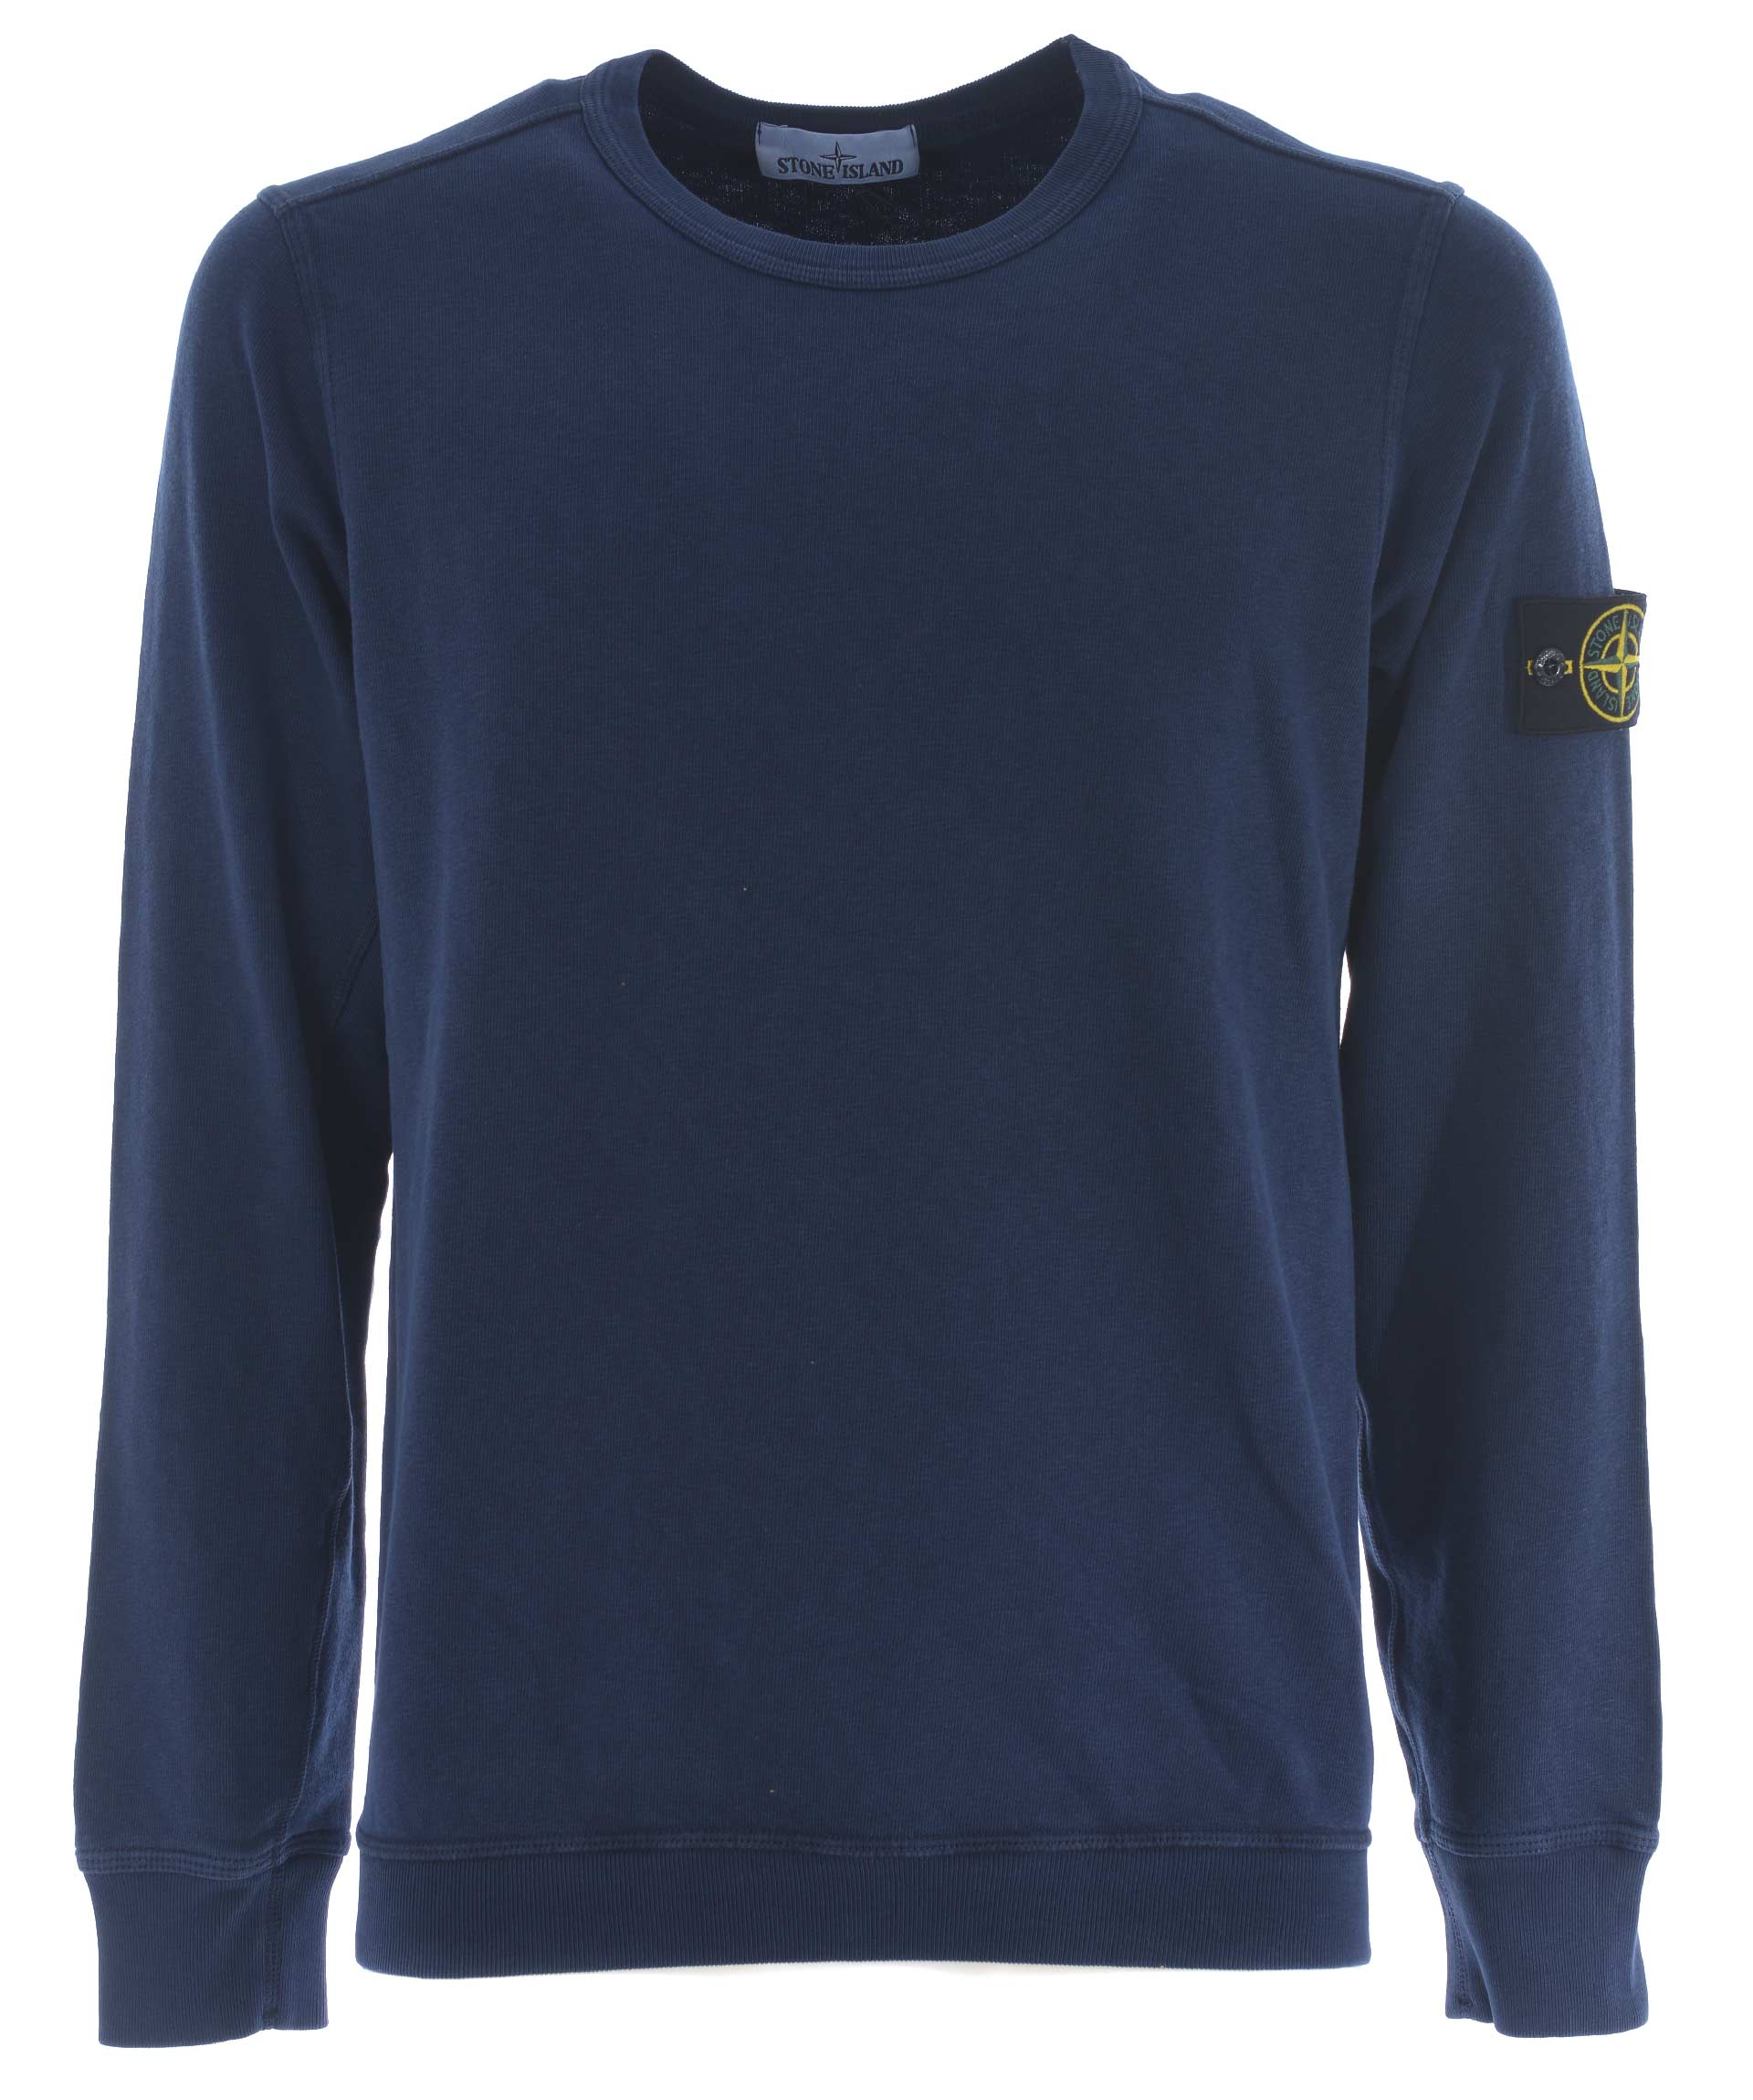 100% authentic d0be4 541a1 Felpe Uomo stone island